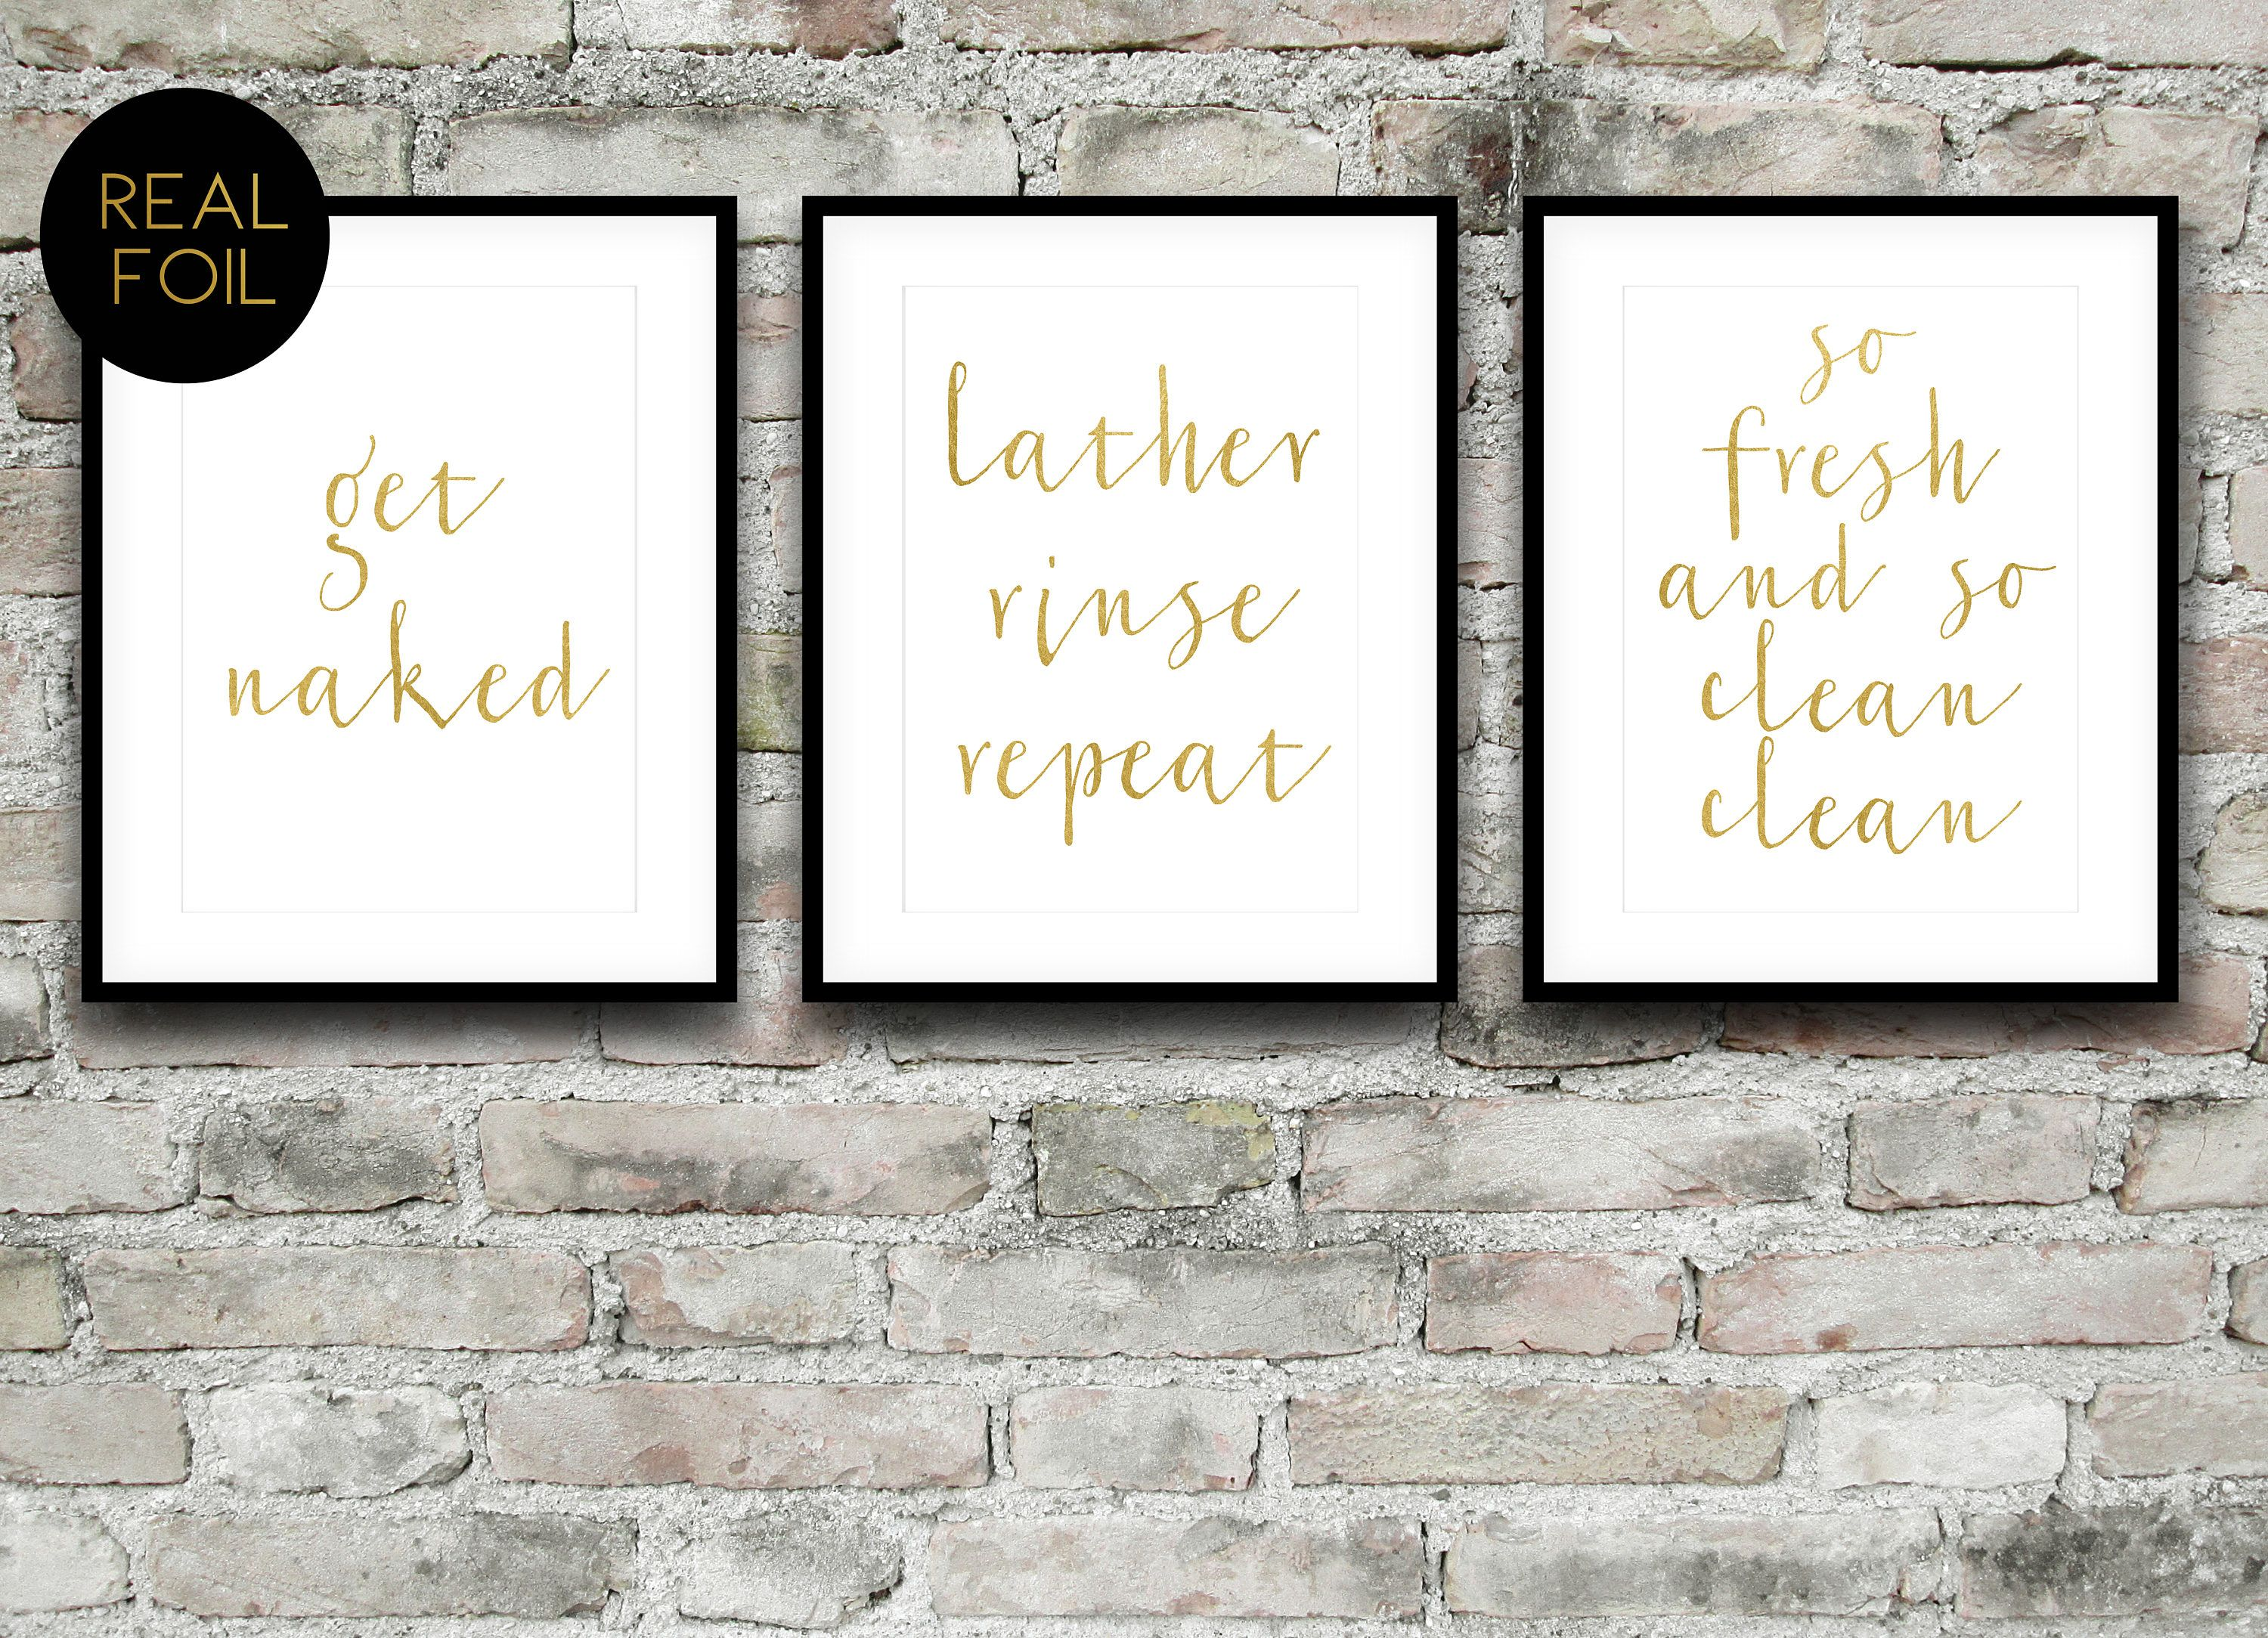 GET NAKED A3 A5 8x10 Real Foil Print Quote Home Decoration Wall Art Quote Sign